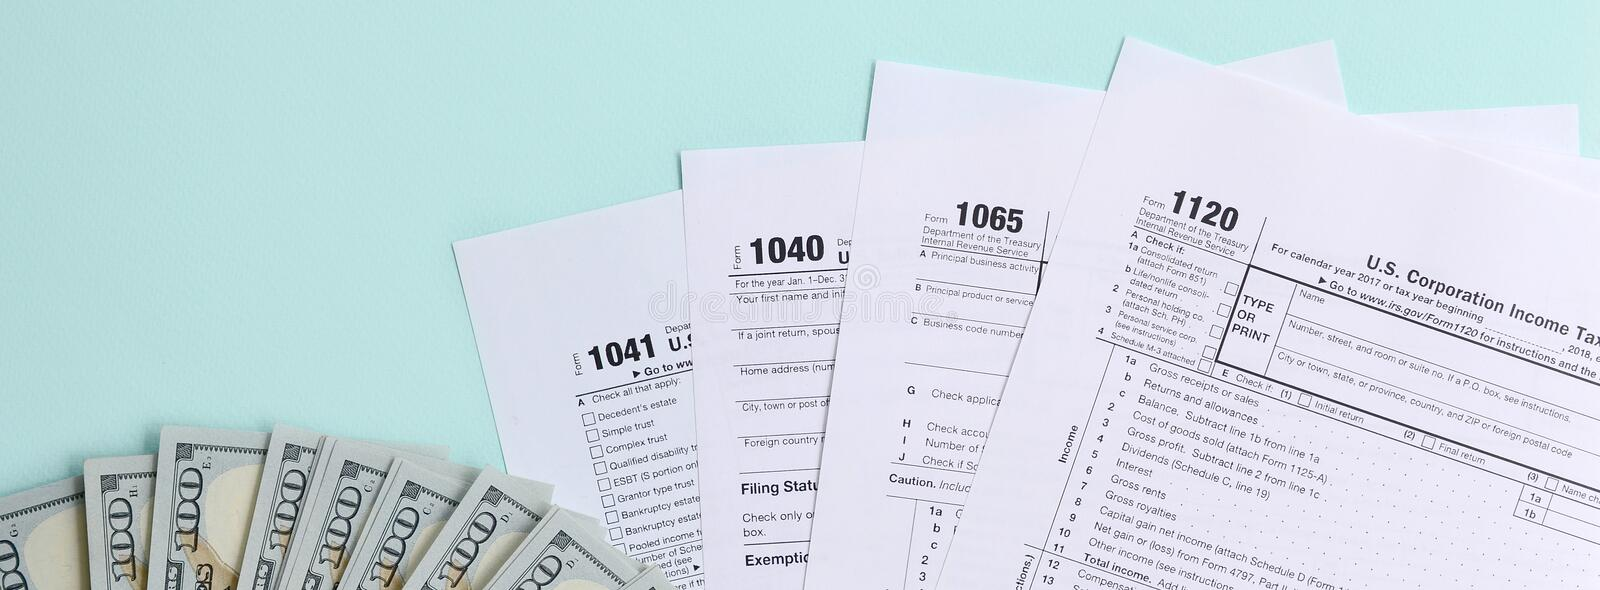 Tax forms lies near hundred dollar bills and blue pen on a light blue background. Income tax return stock photo